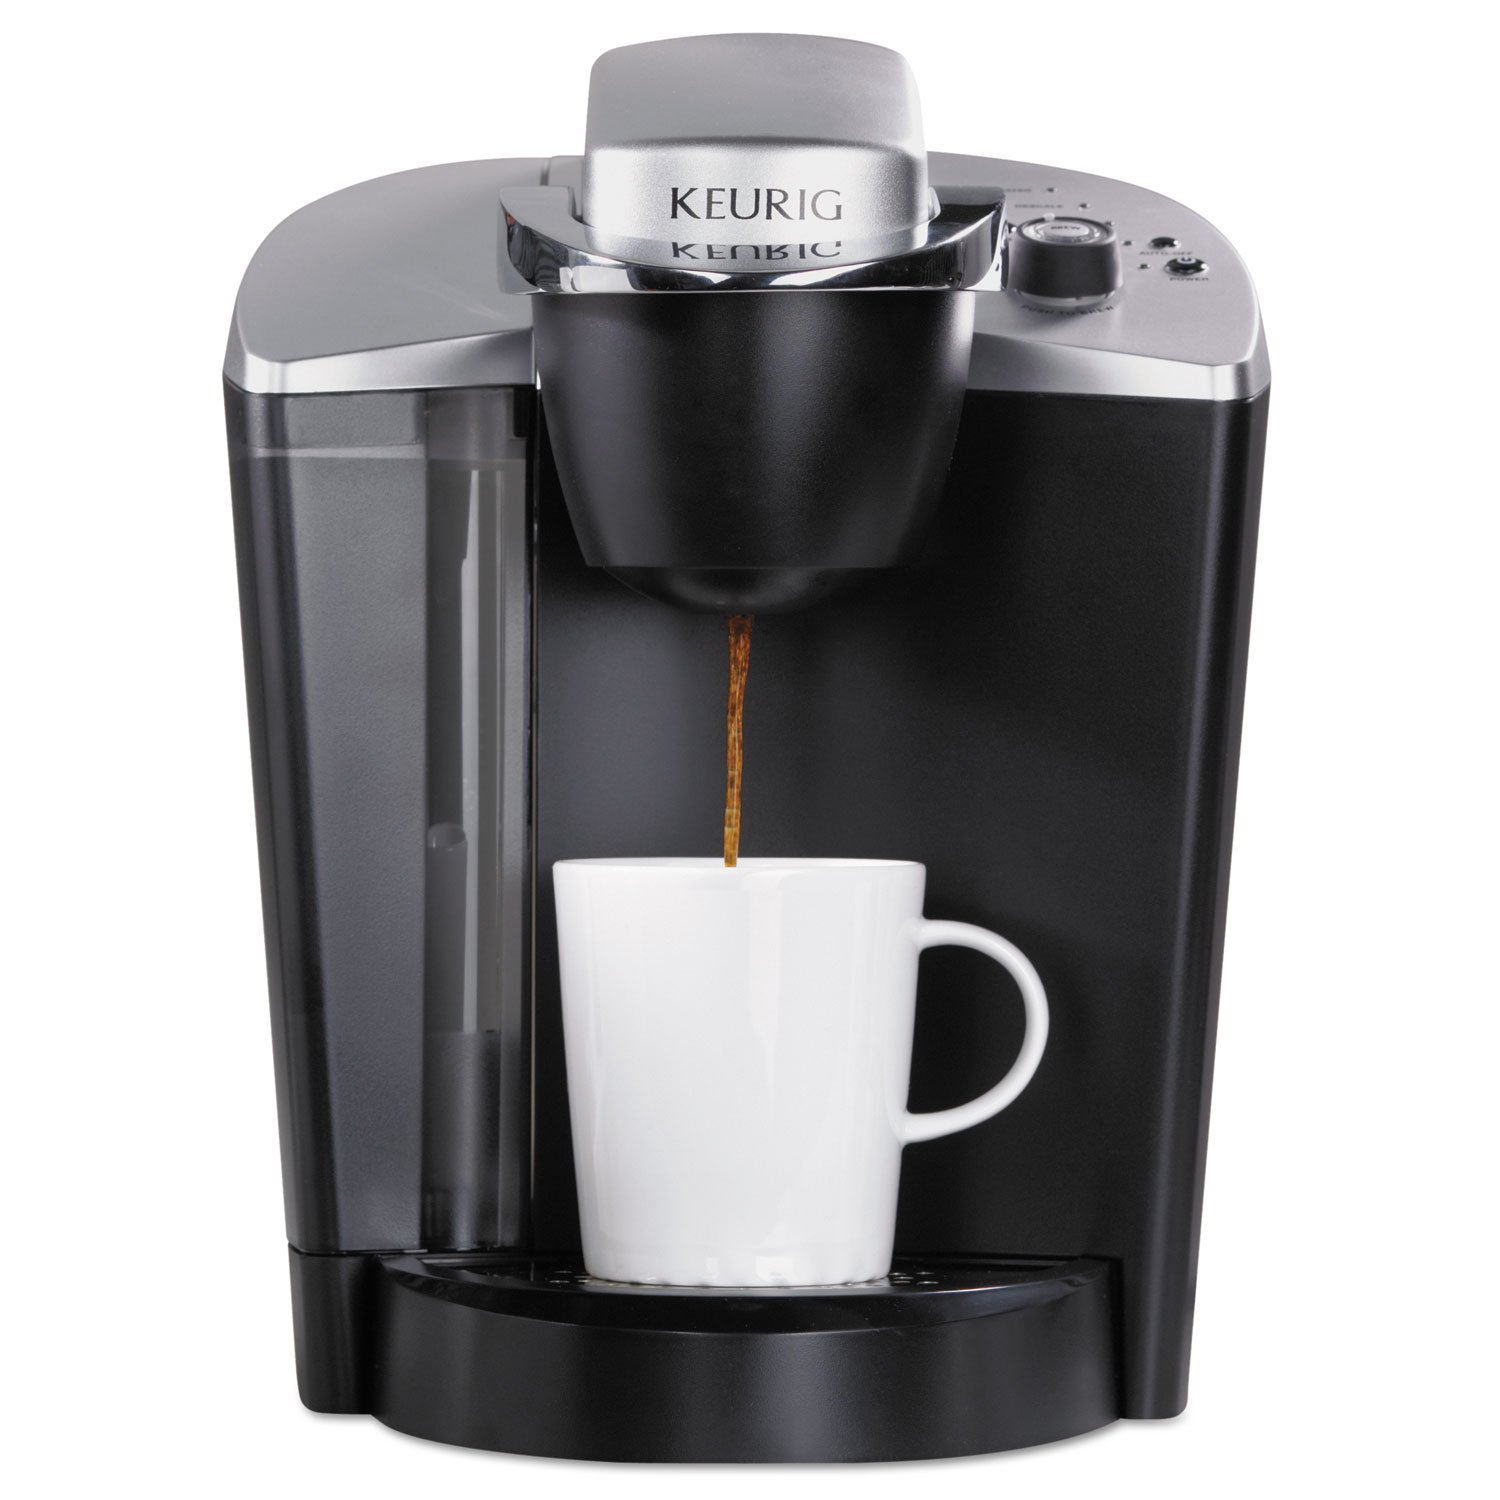 Keurig OfficePRO K145 Brewing System, Single-Cup, Silver